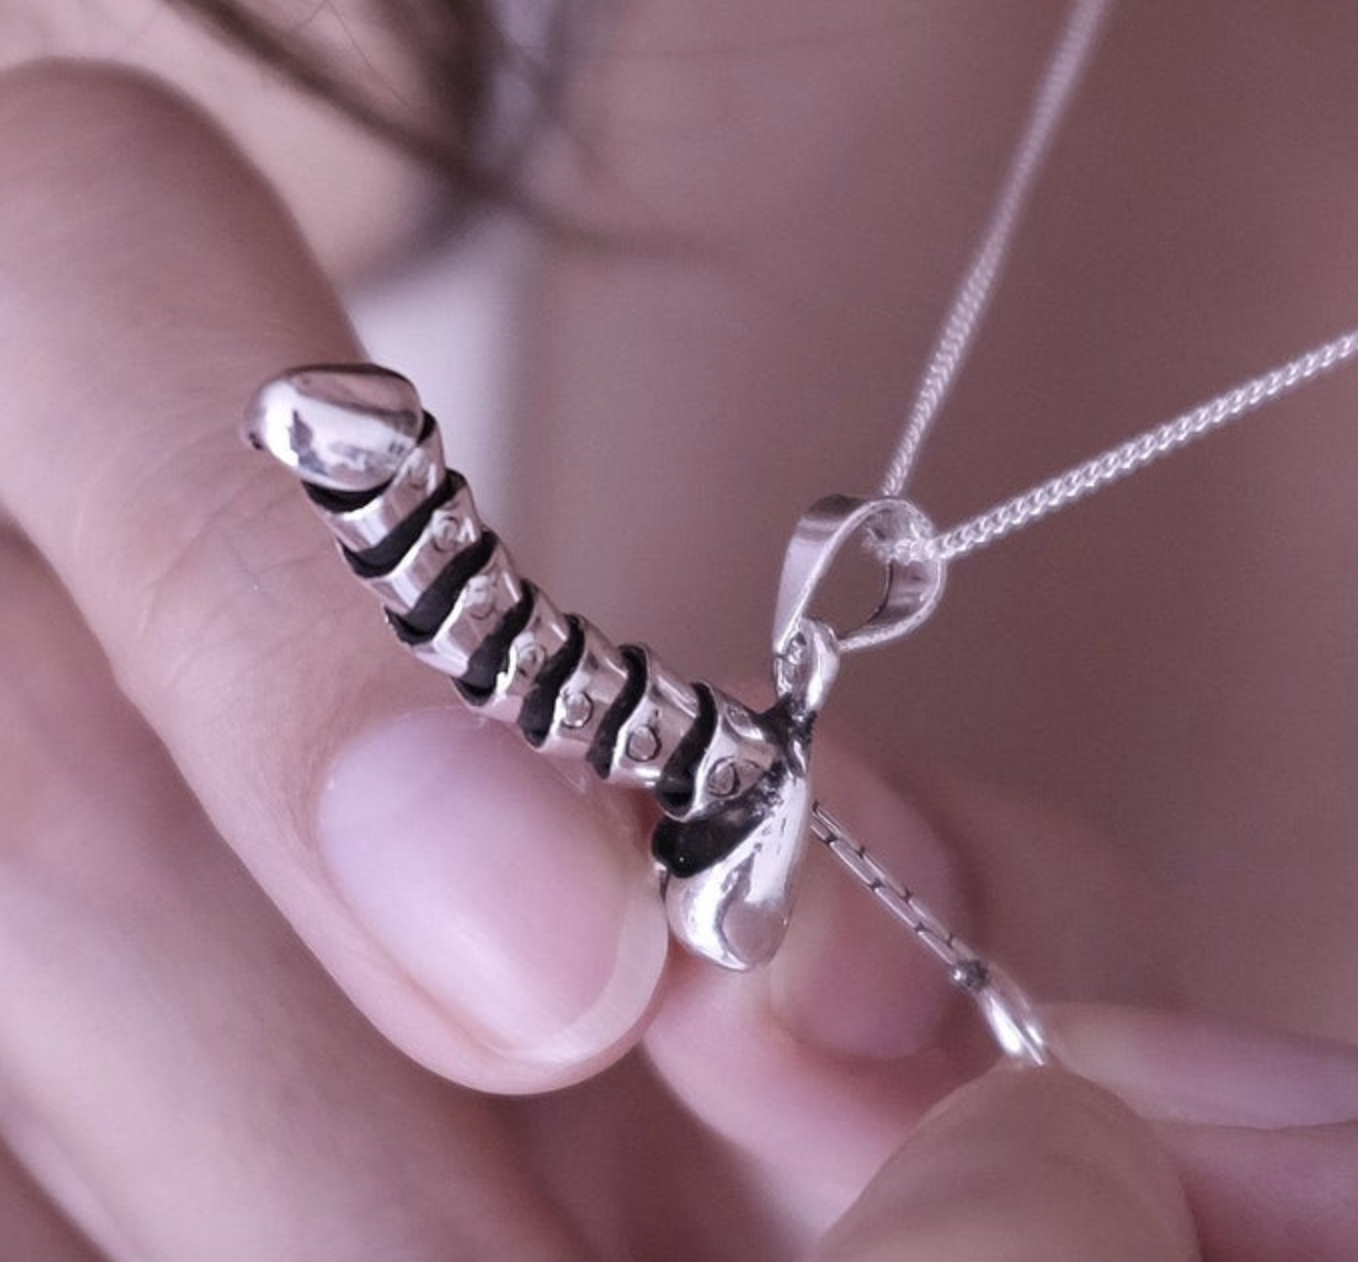 necklace penis